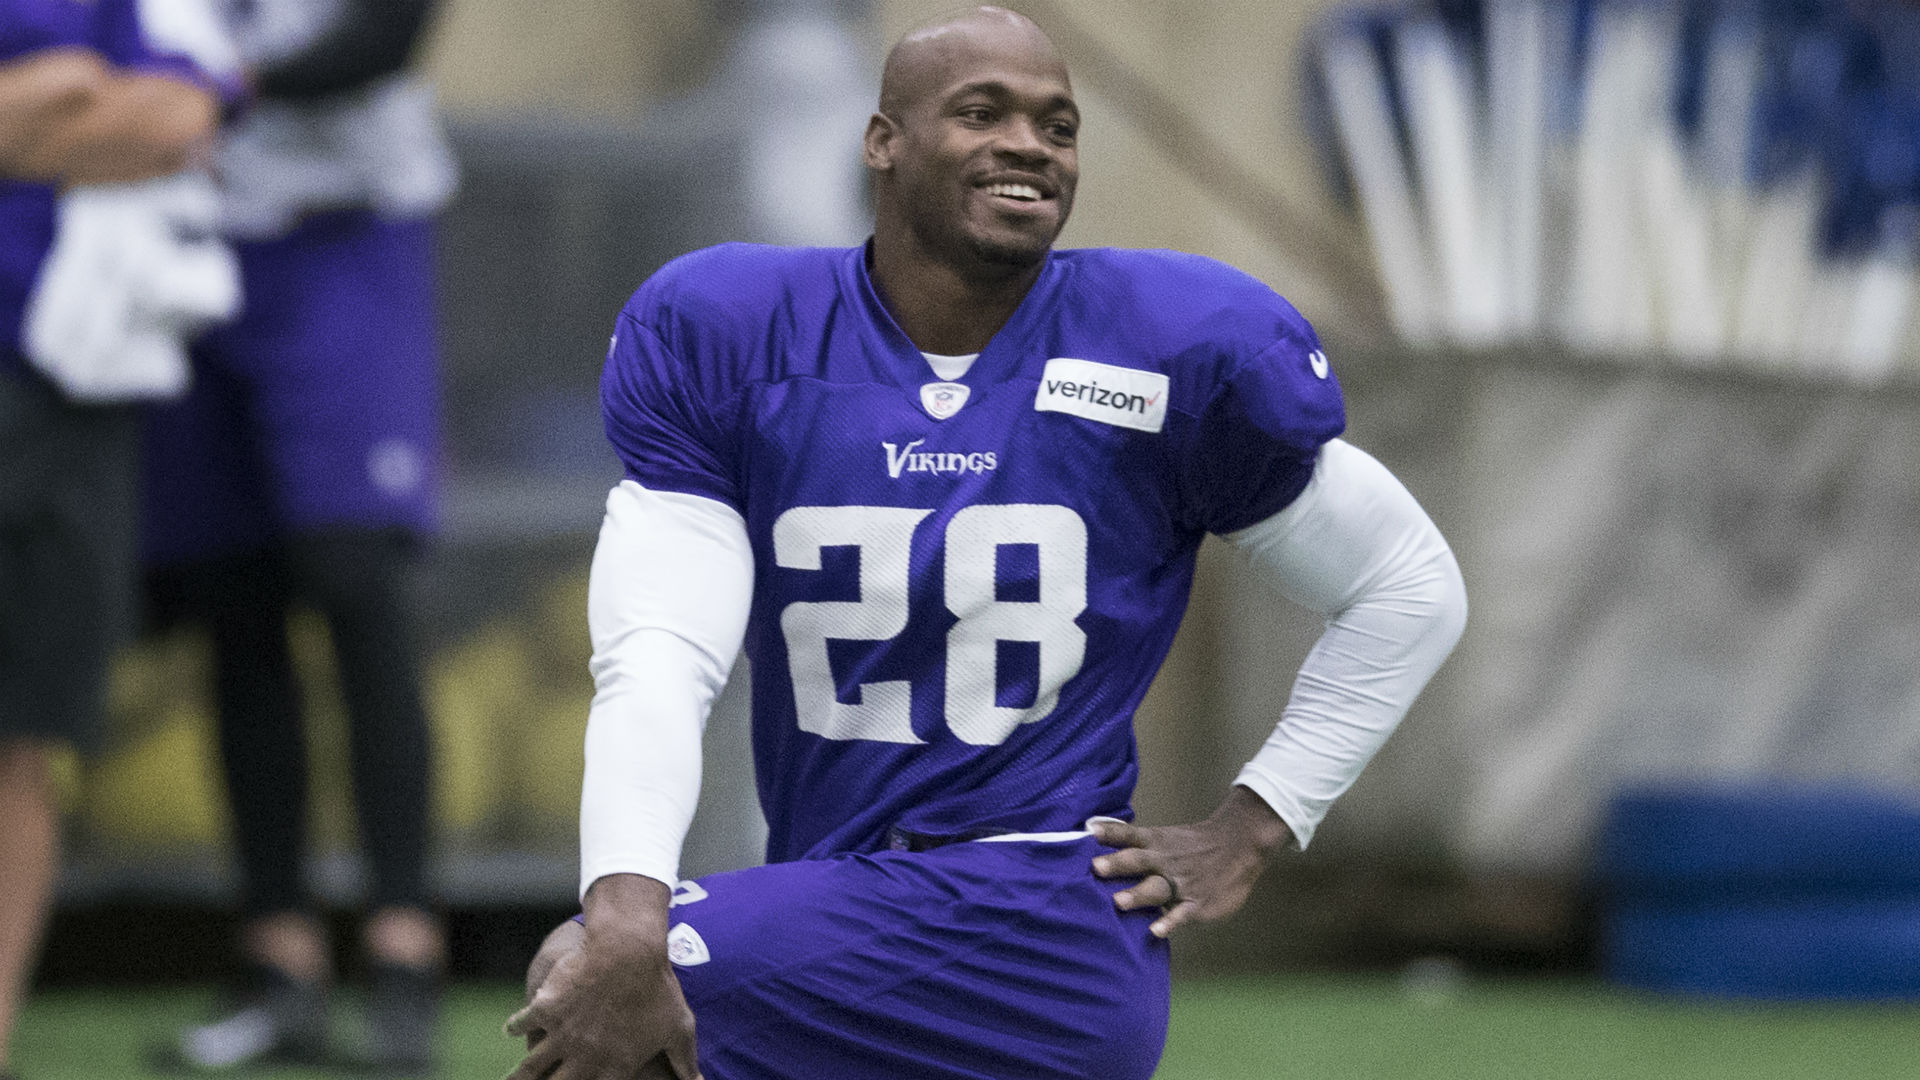 Former Vikings RB Adrian Peterson Still Looking For A Team In 2018